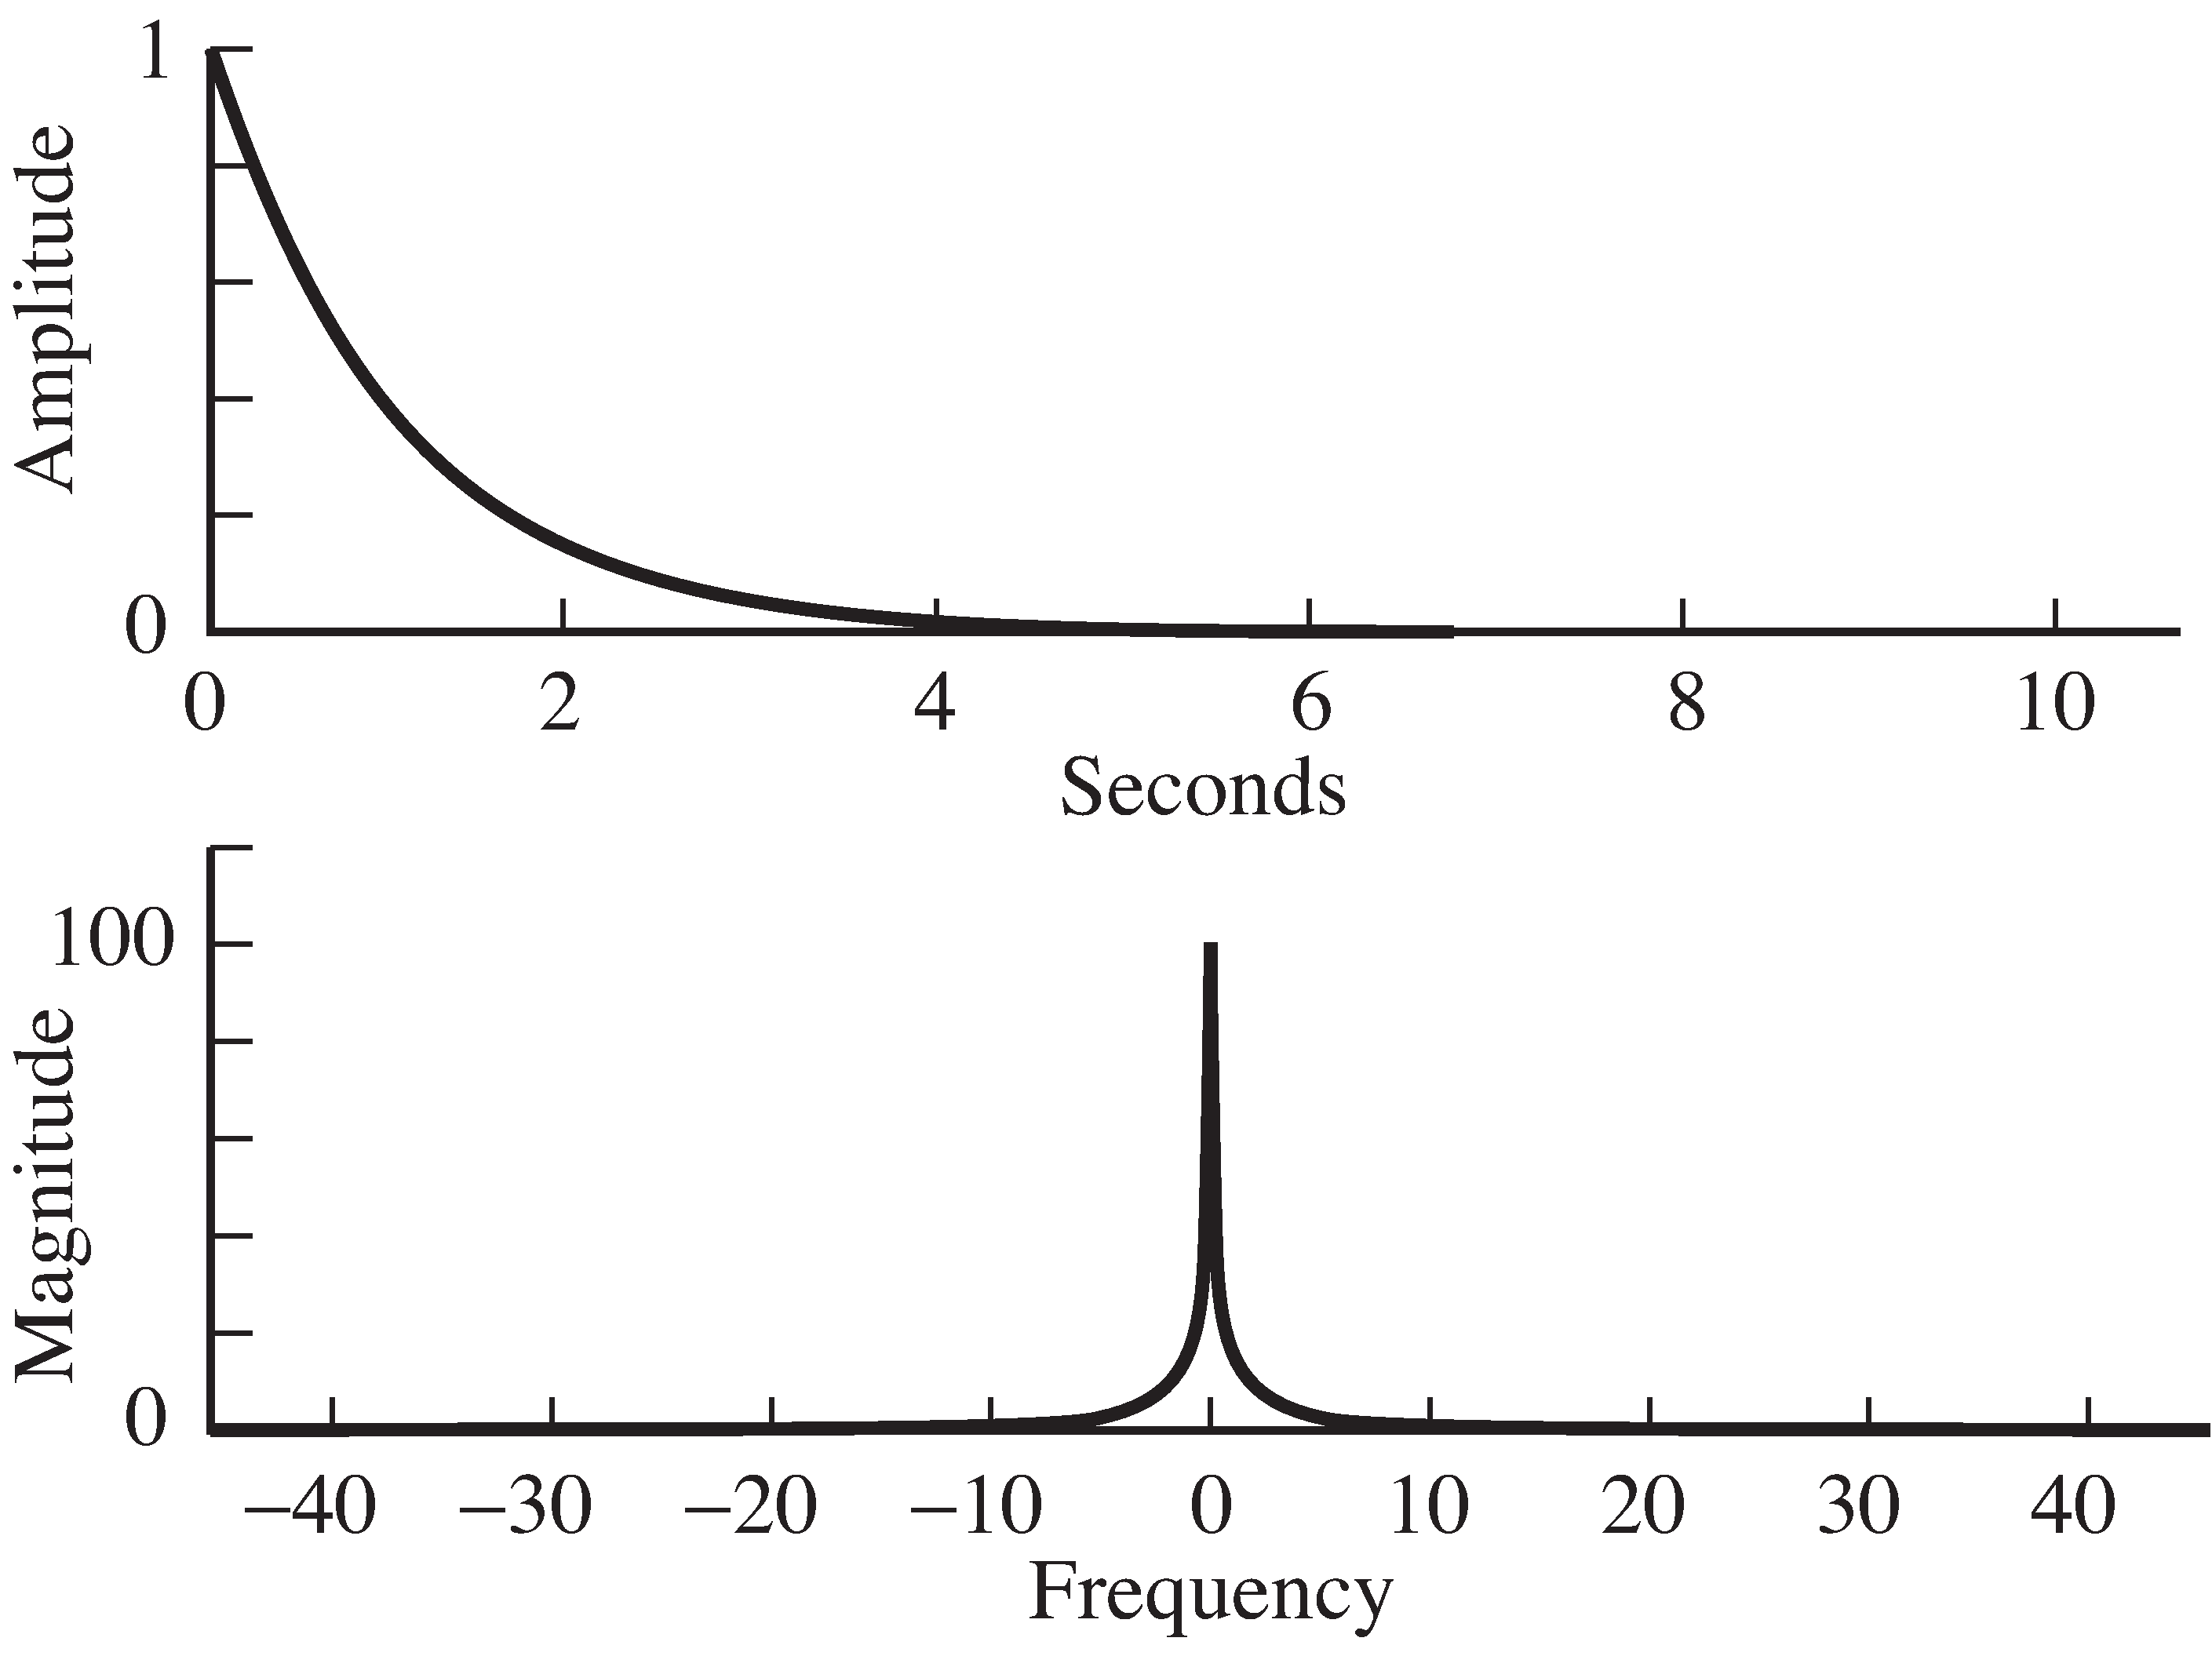 The action of a system in time is defined by its impulse response (in the top plot). The action of the system in frequency is defined by its frequency response (in the bottom plot), a kind of lowpass filter.